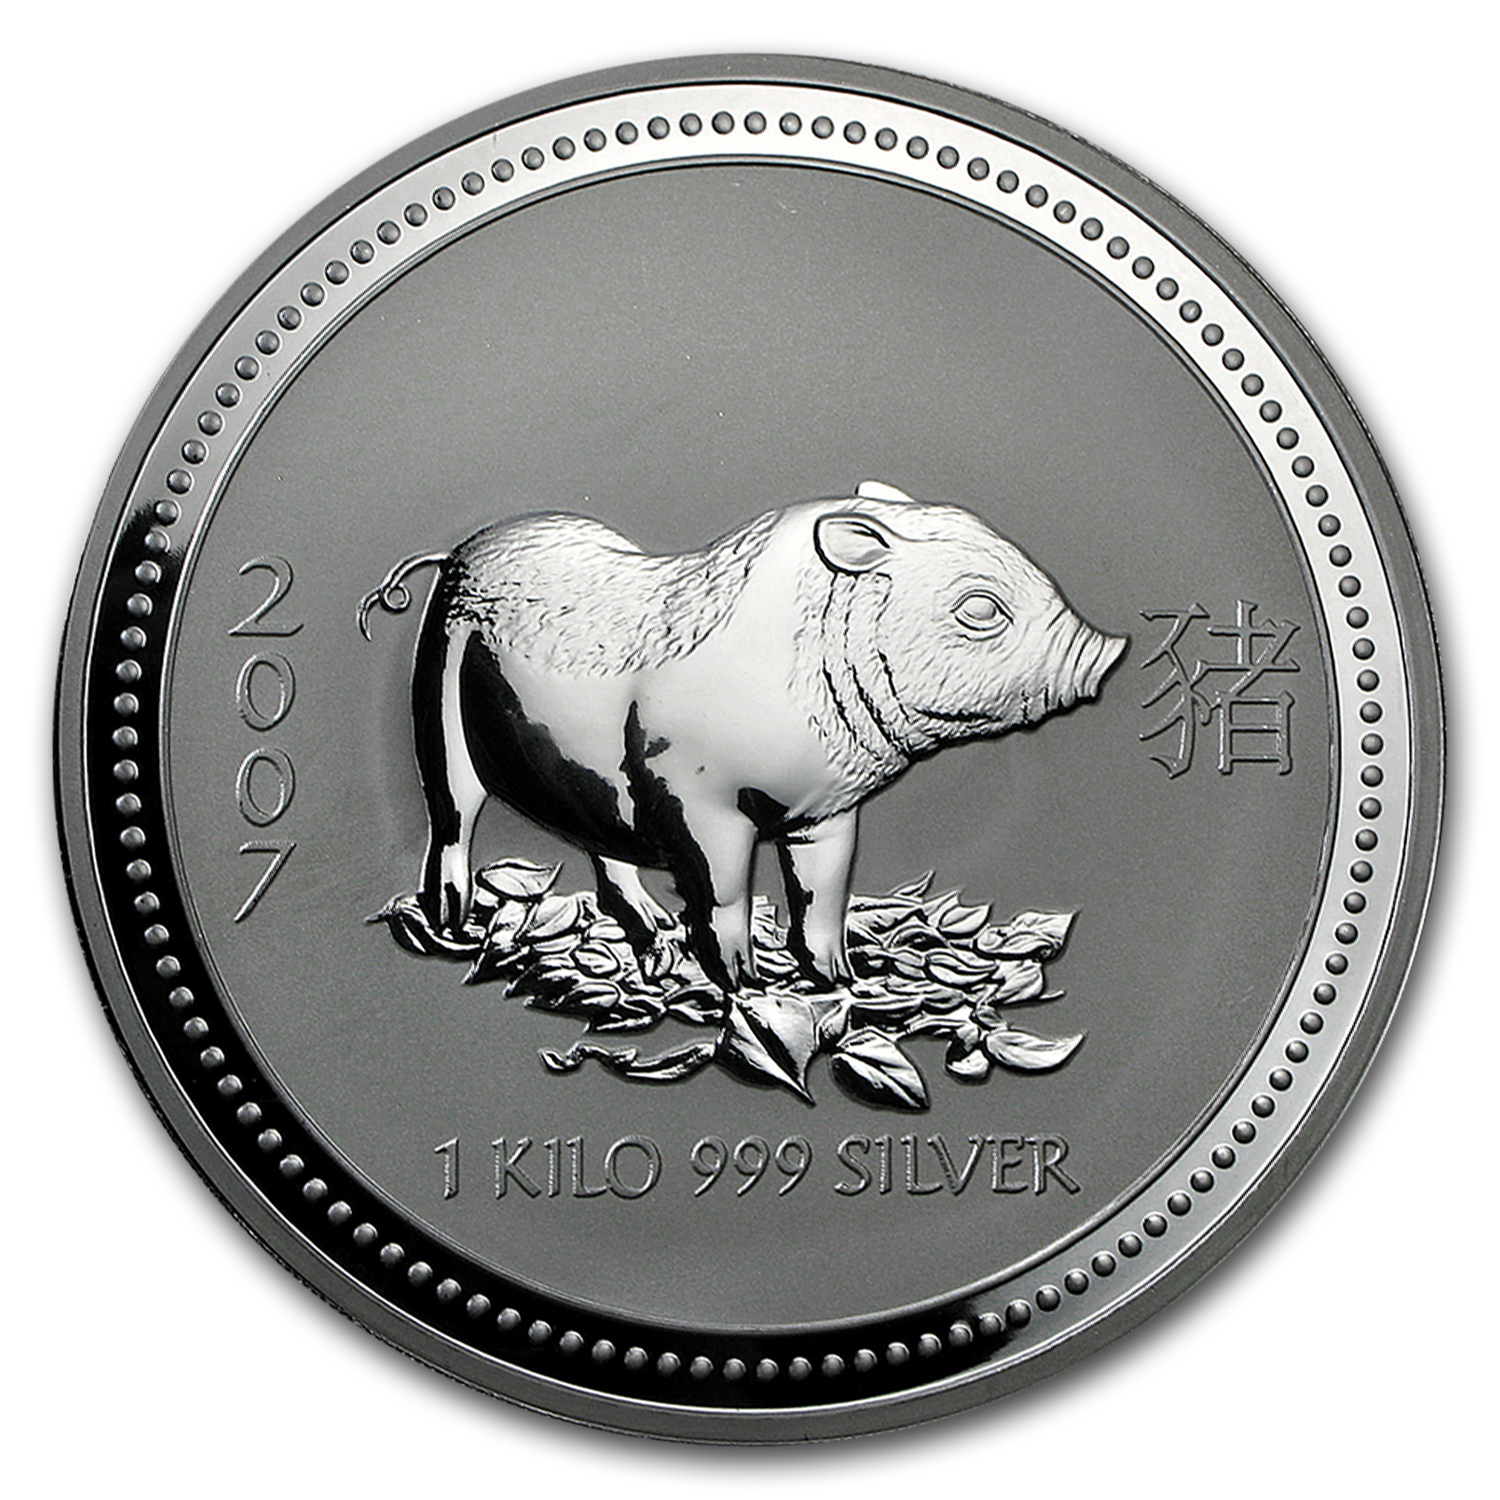 2007 1 Kilo Silver Australian Year of the Pig BU